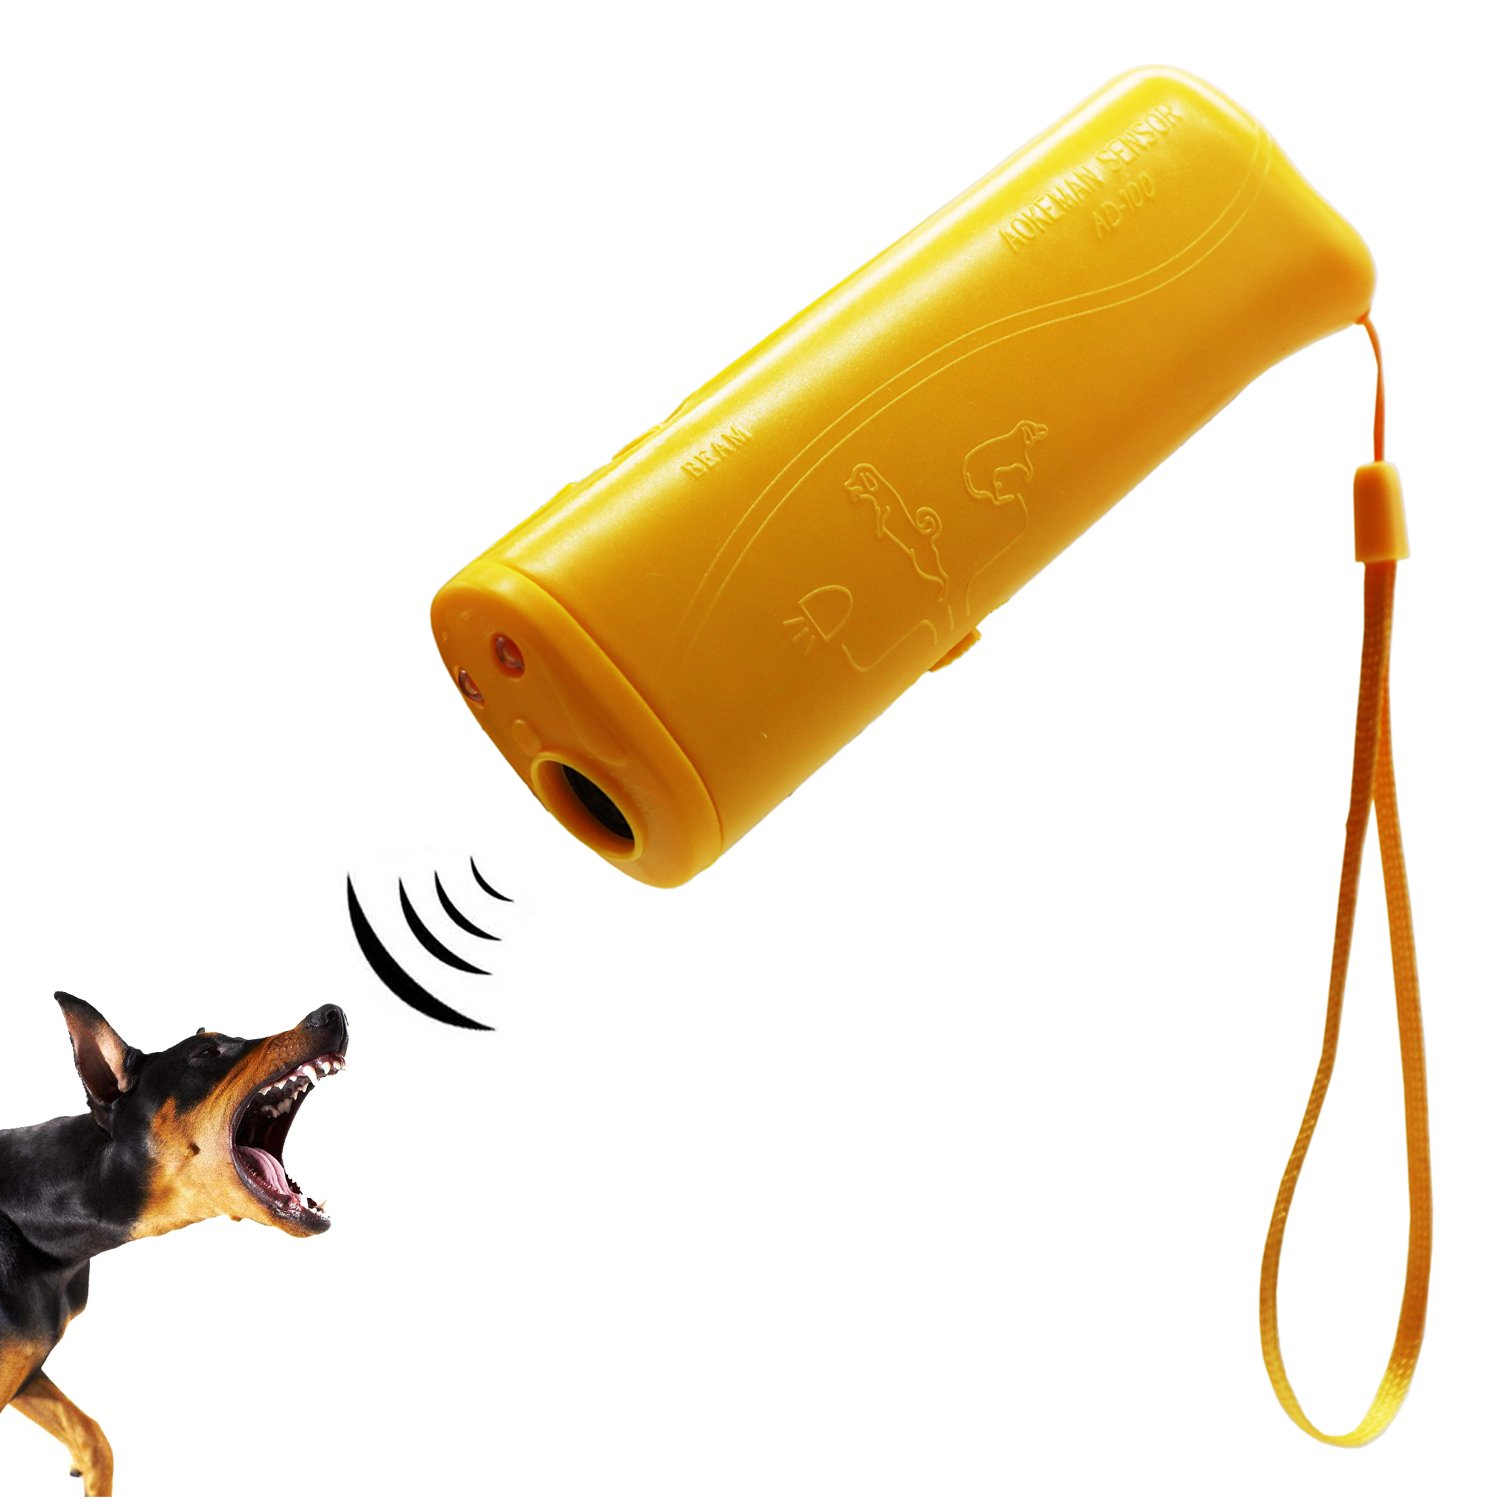 Ruri's Ultrasonic Dog Repeller and Trainer Device 3 in 1 Anti Barking Stop Bark Control and Trainer with LED Flashlight by Ruri's